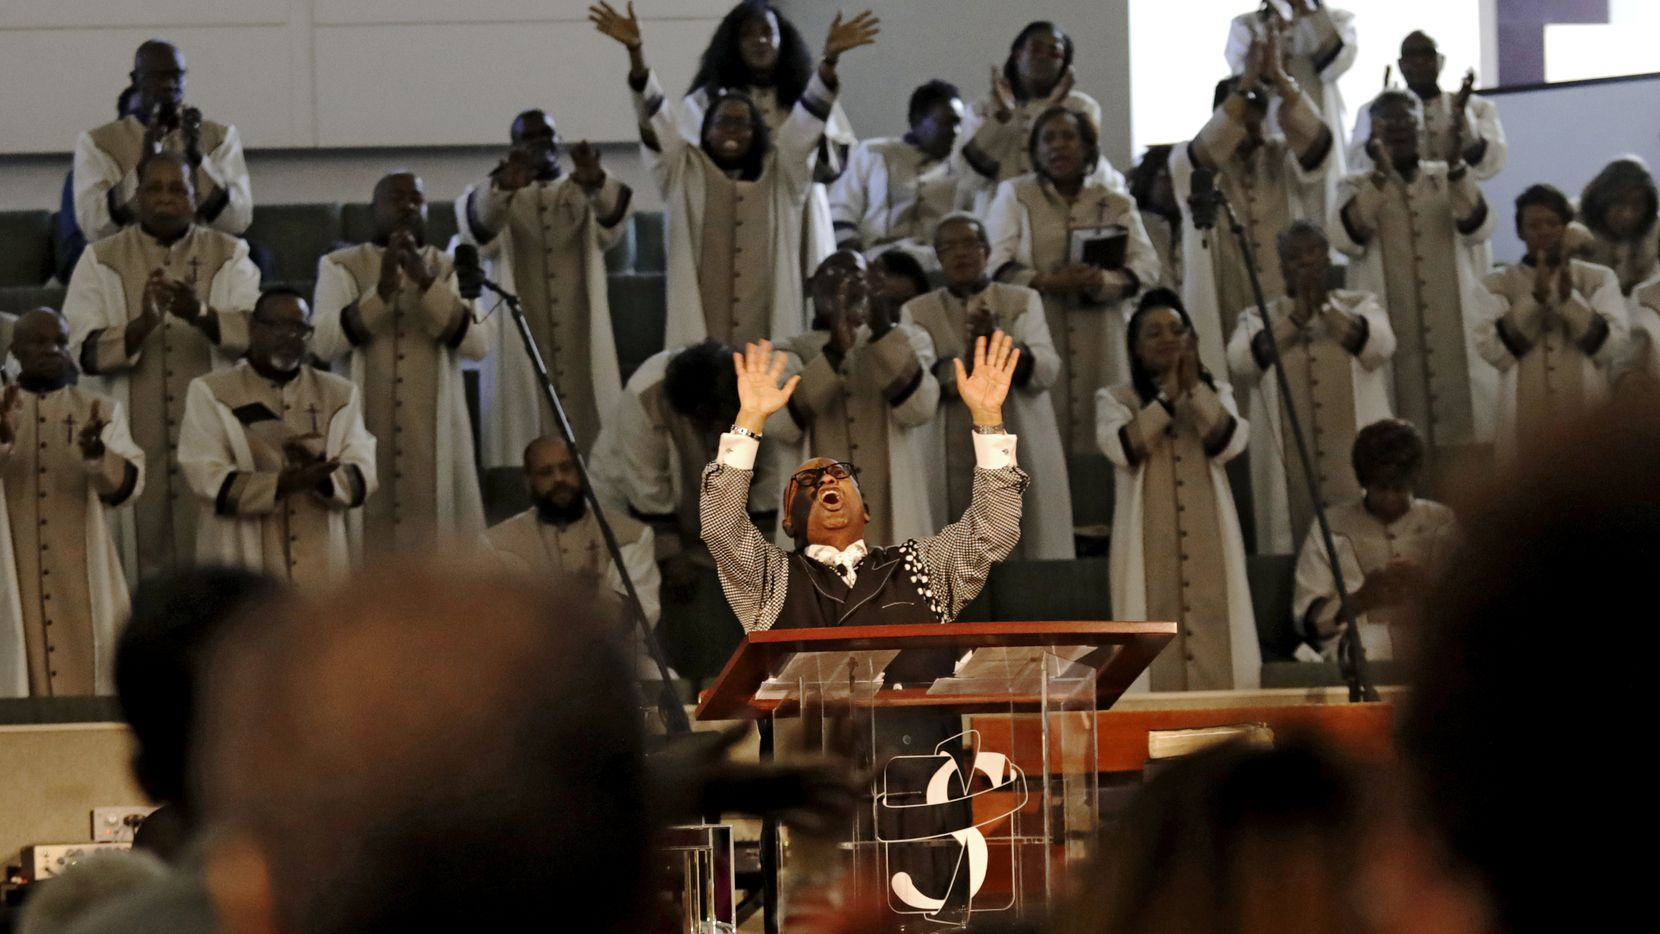 Pastor Isiah Joshua lifts his hands heavenward while preaching at Shiloh Missionary Baptist Church in Plano.